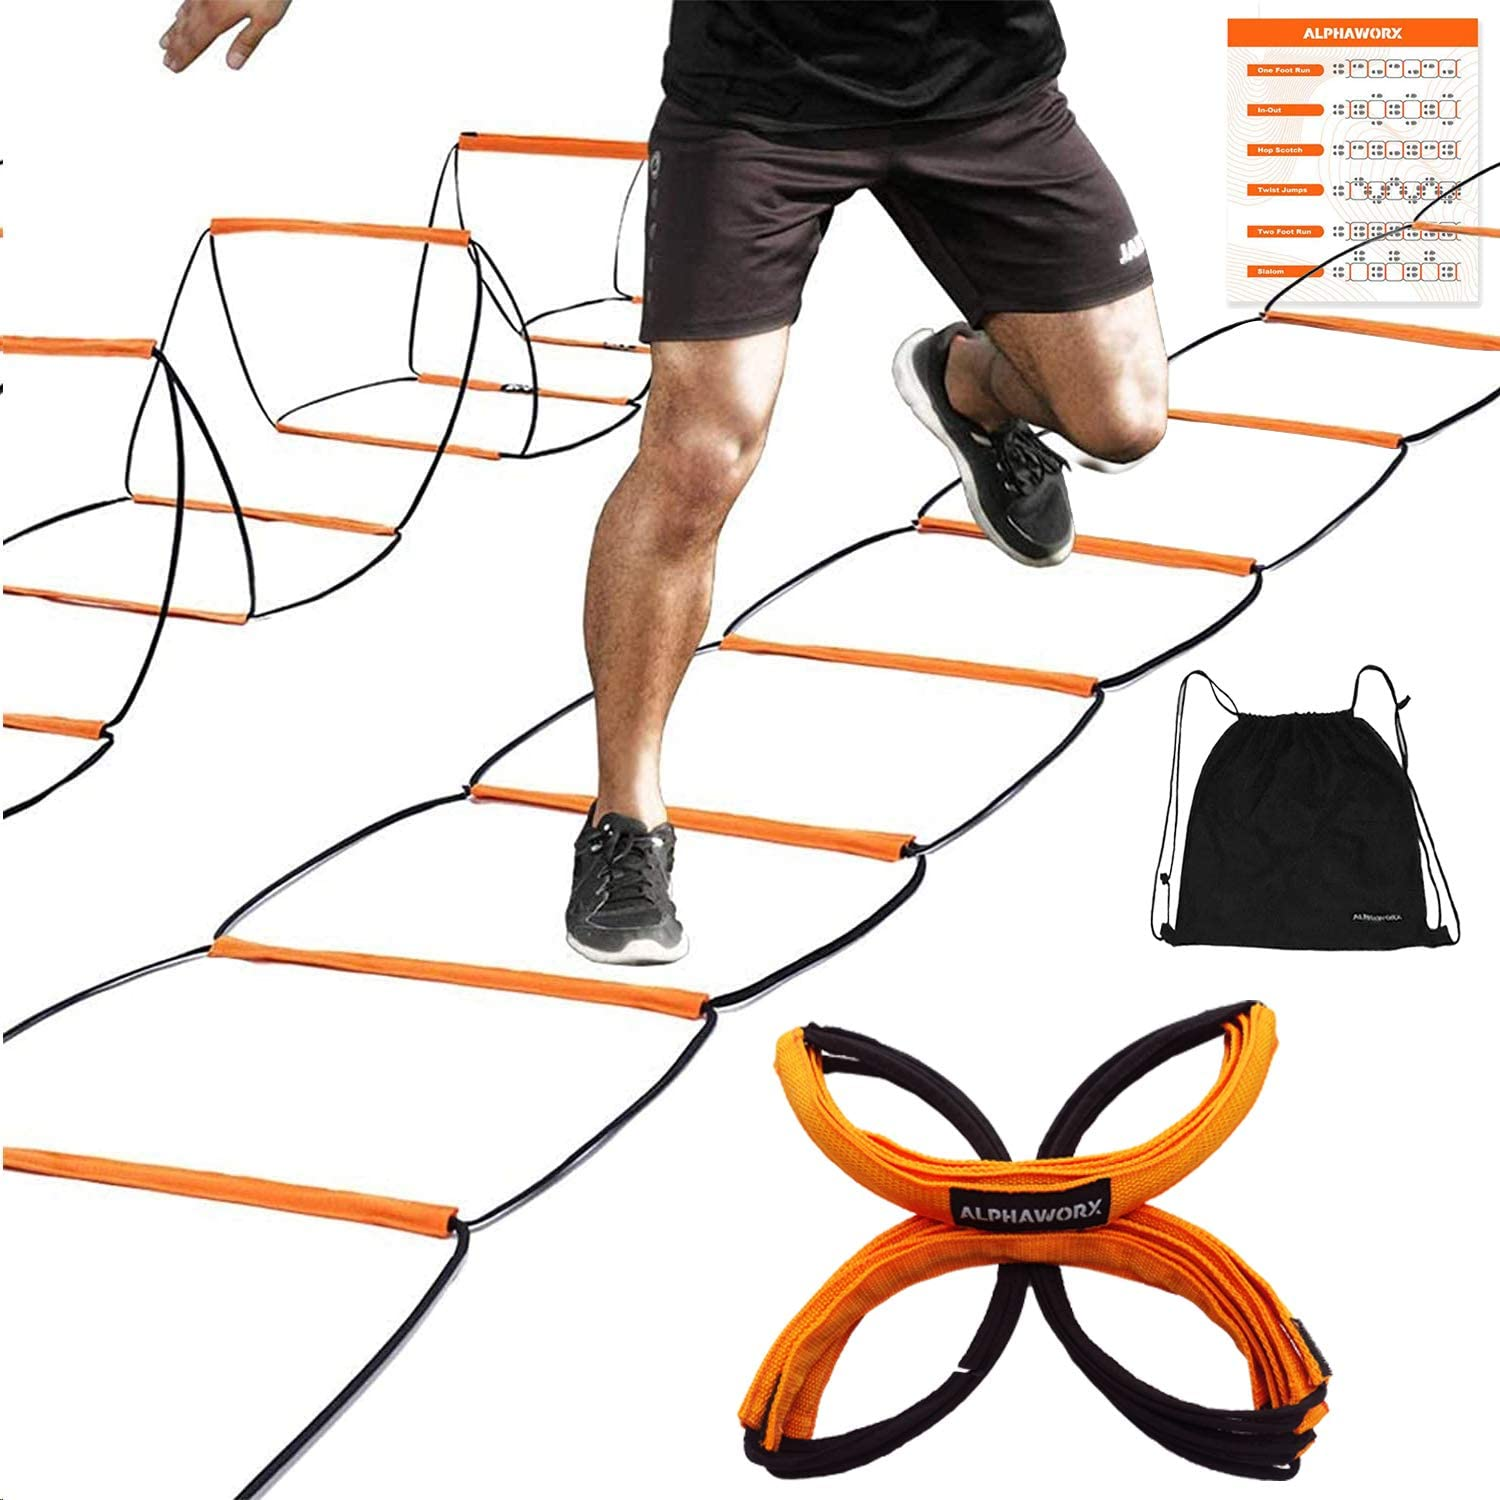 ALPHAWORX All-in-one Max 64% OFF Agility Houston Mall Ladder Equipment Training Speed and